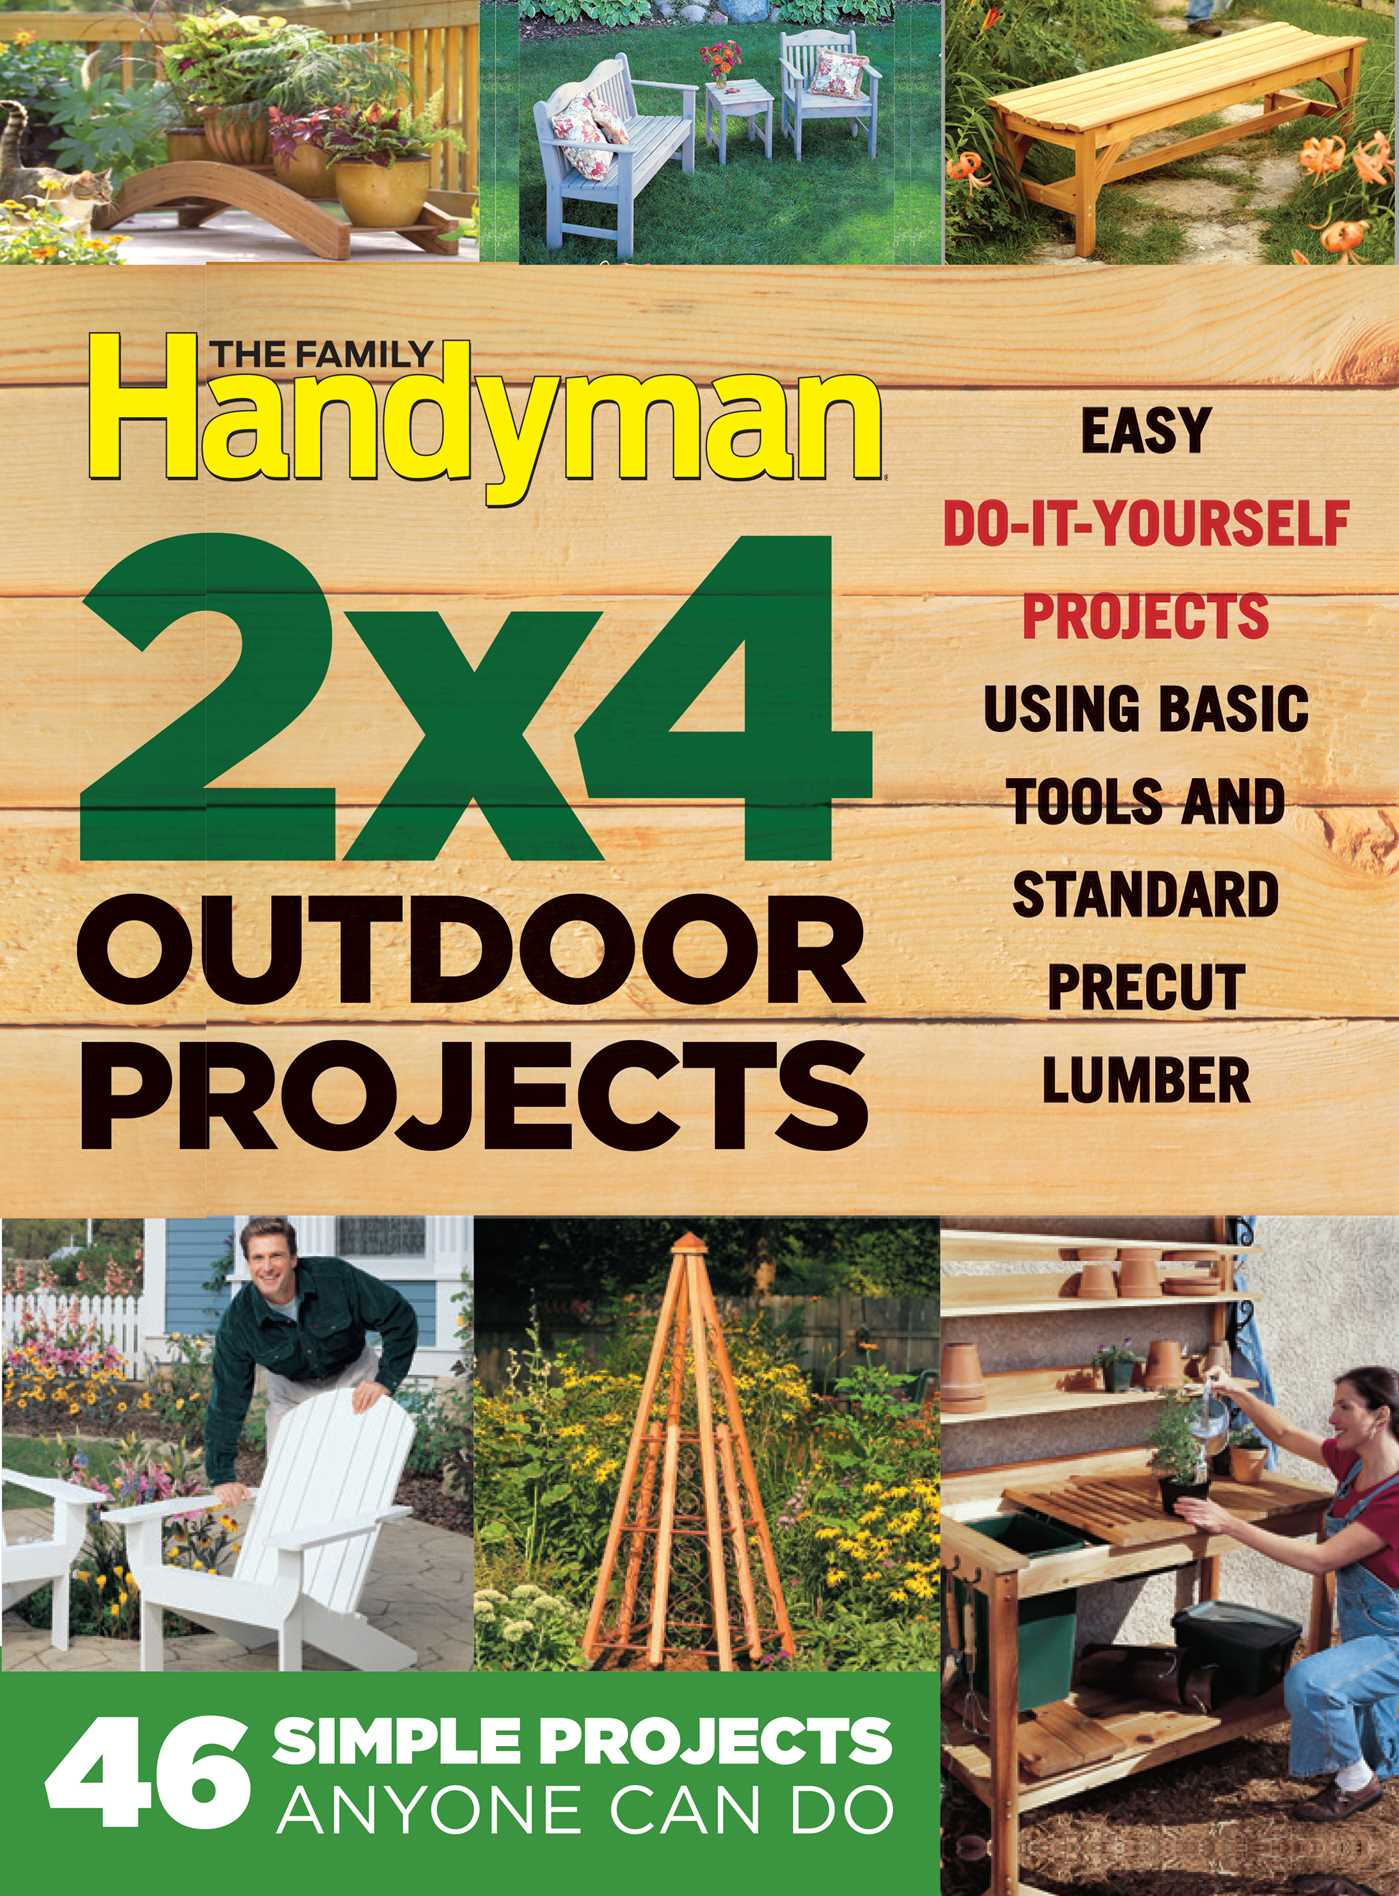 The family handyman 2 x 4 outdoor projects 9781621453109 hr